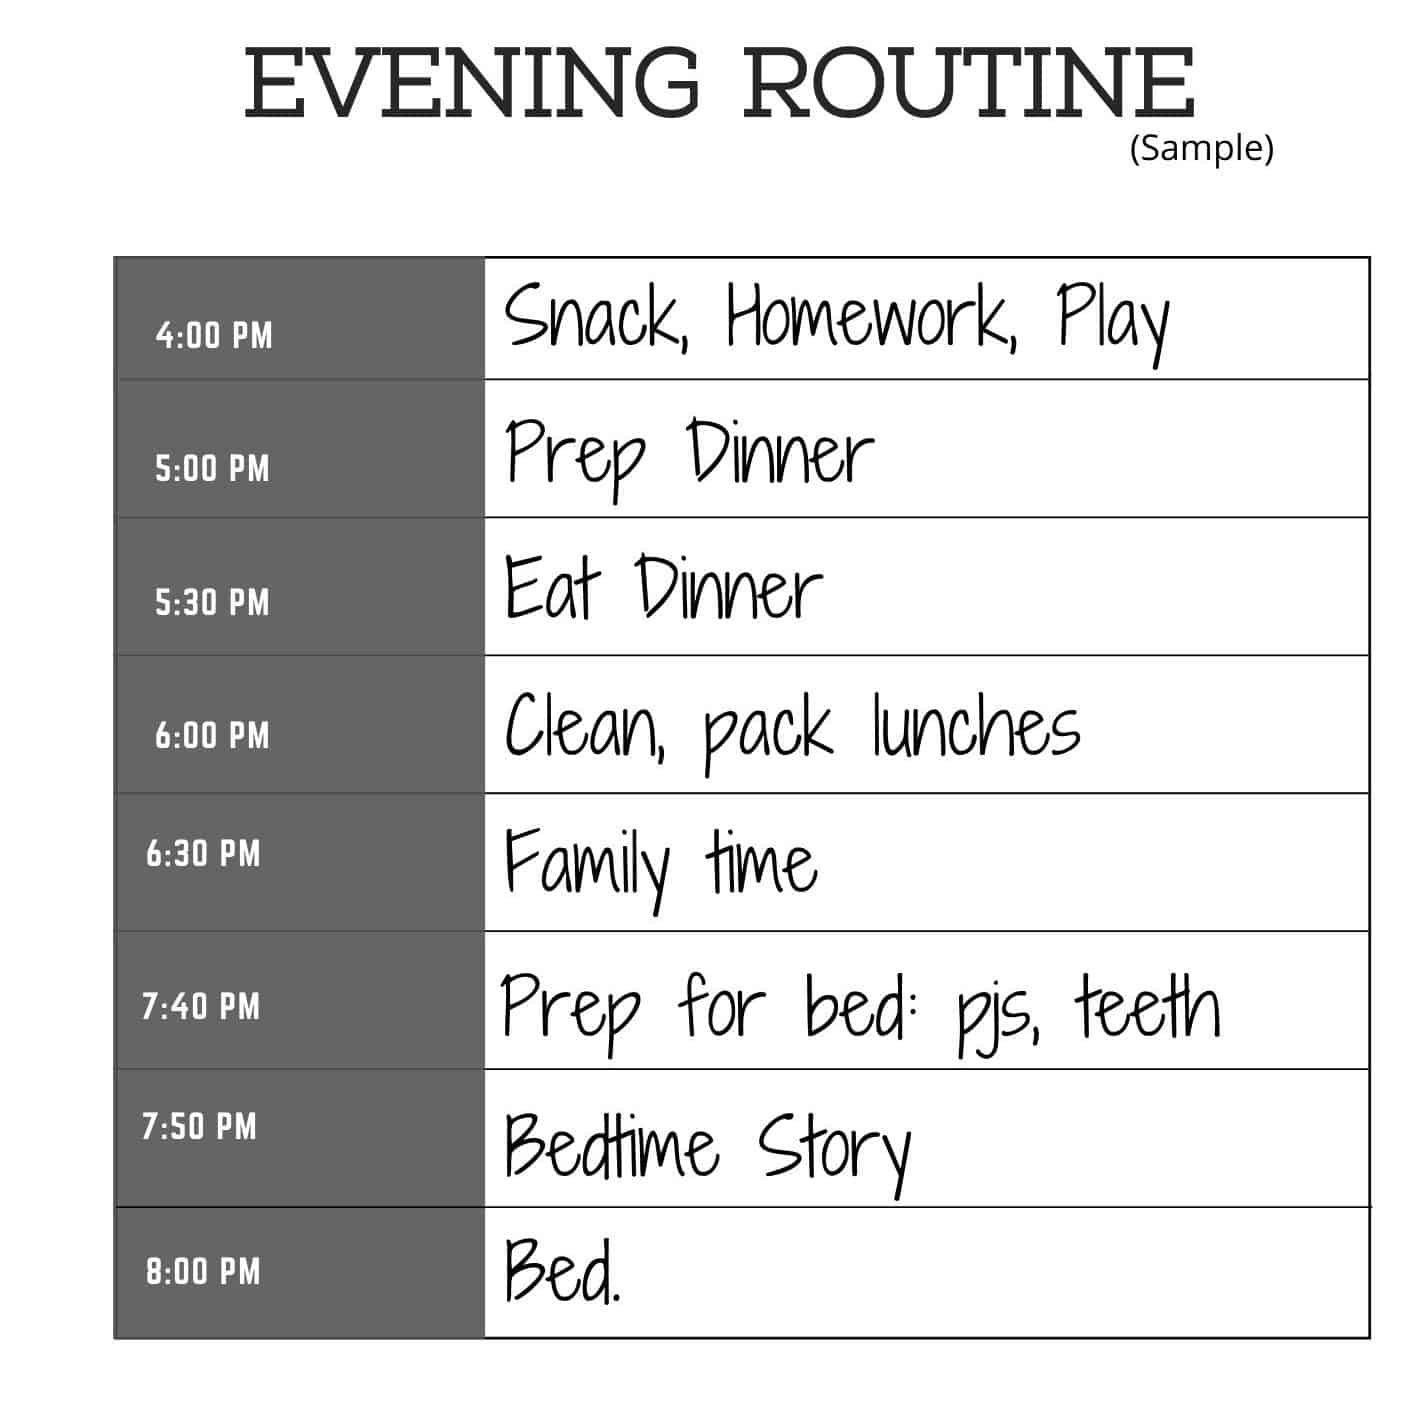 A sample evening routine for a family